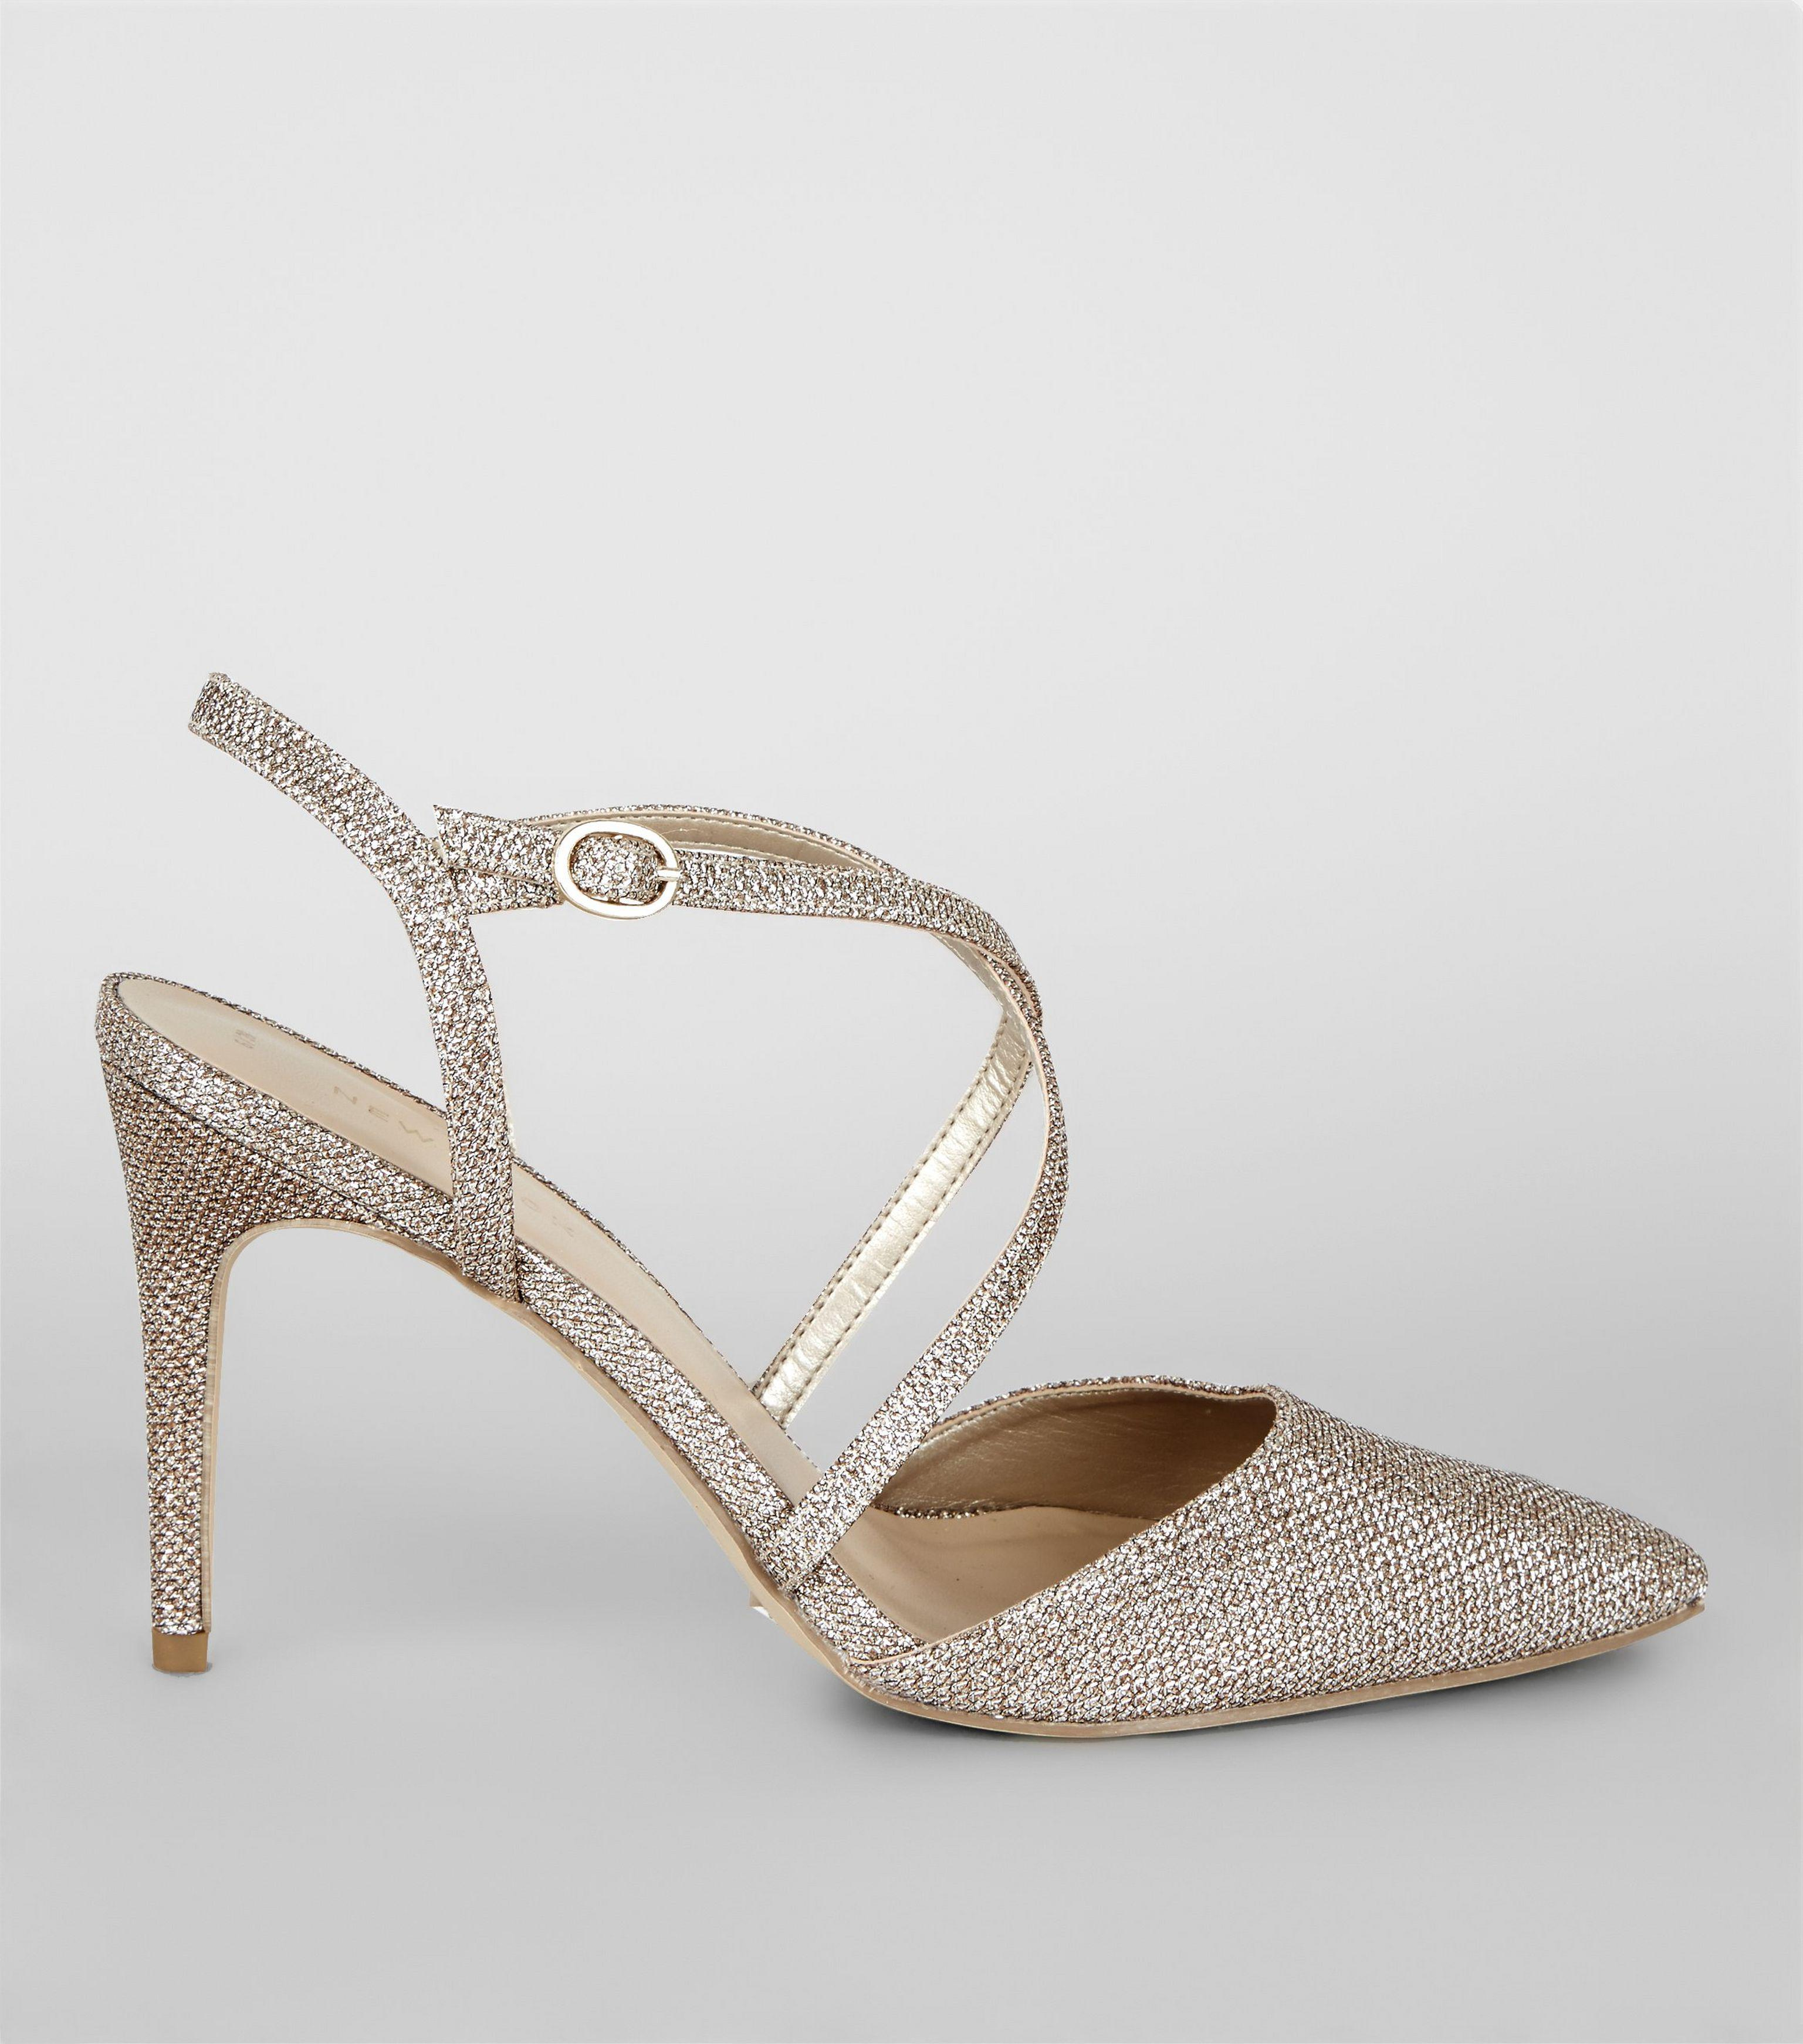 a84effb558651 New Look Gold Glitter Pointed Cross Strap Heels in Metallic - Lyst